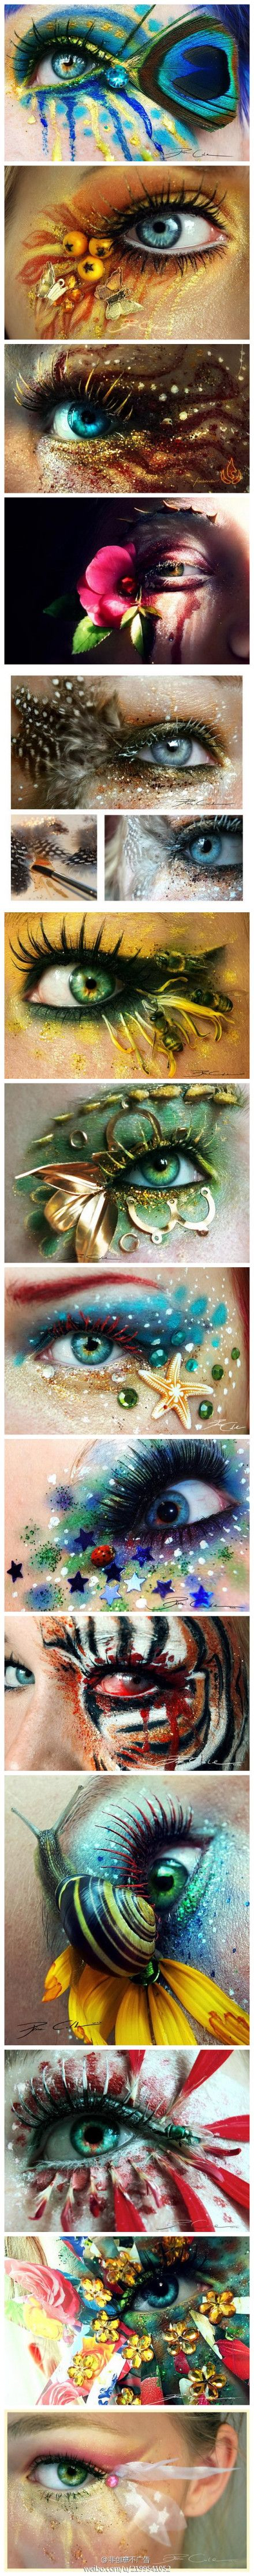 Astonishing eye make up by Svenja Jödicke